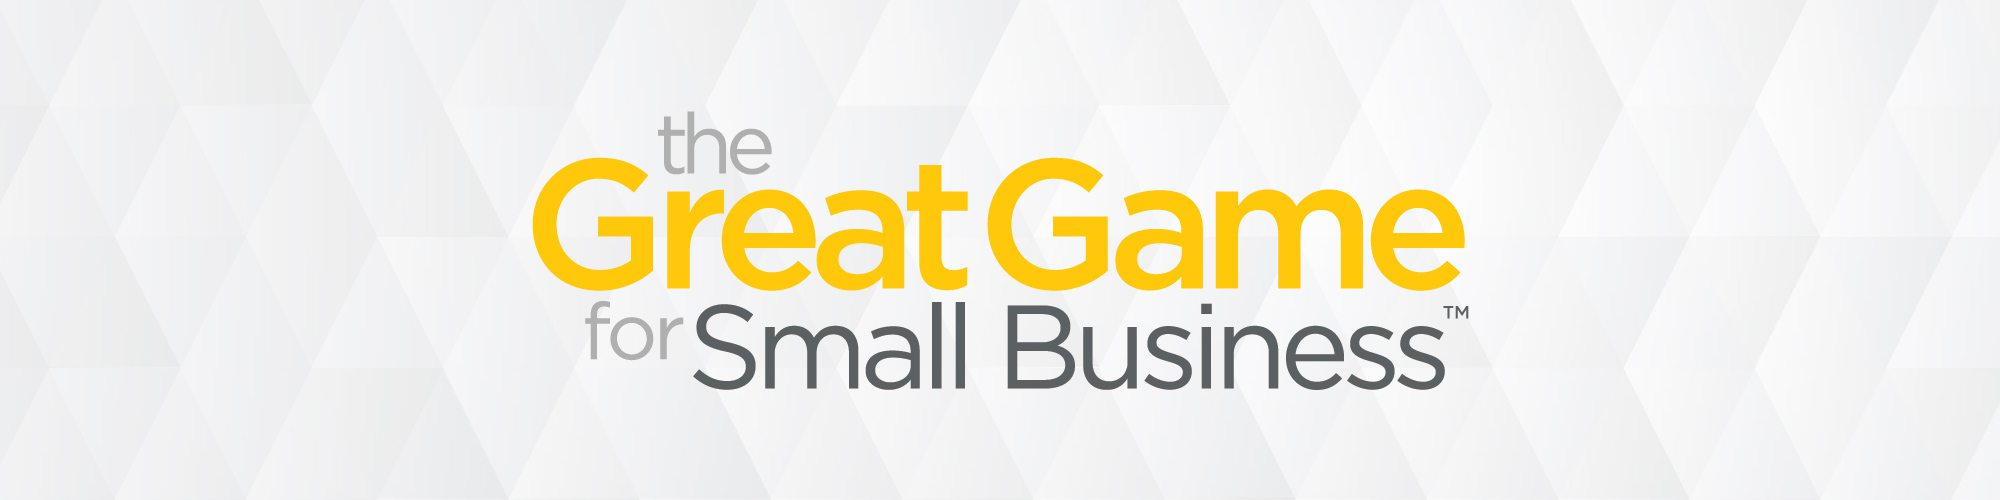 Great Game for Small Business